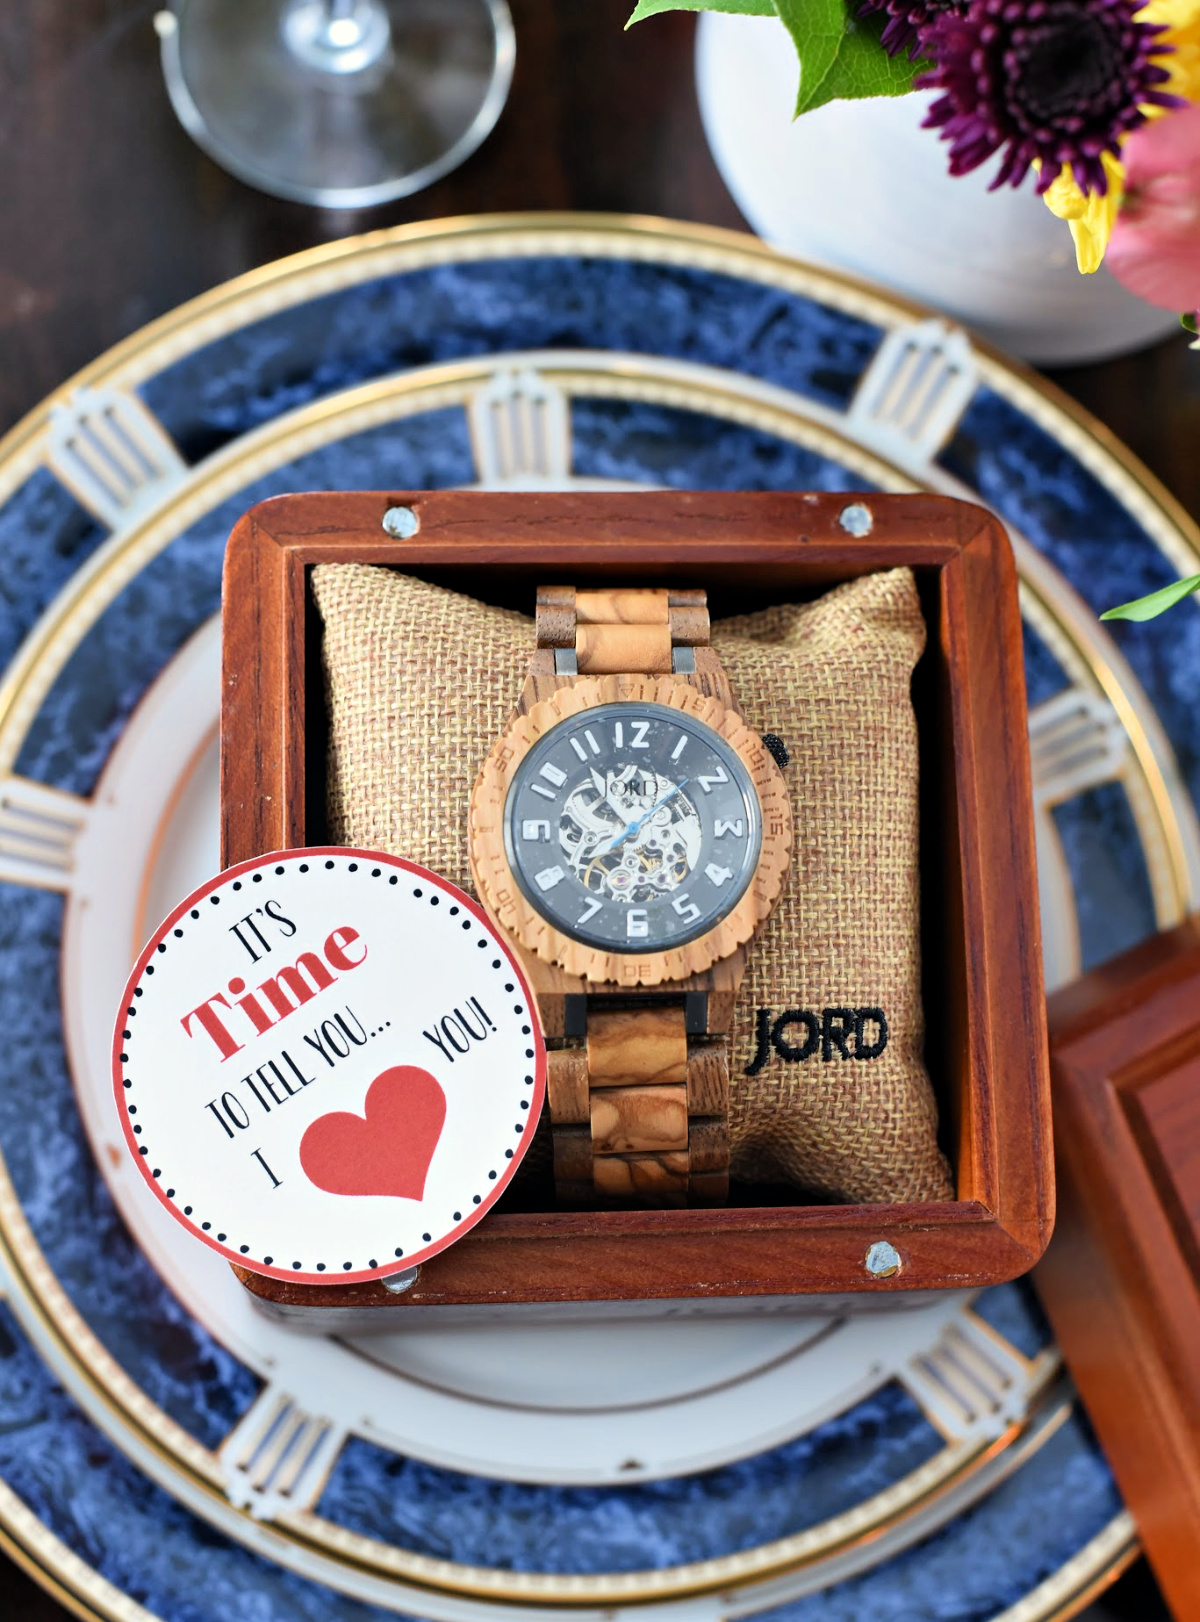 Simple Anniversary Gift for Him or Valentine's Gift Idea-Grab a beautiful watch and add this tag for a sweet and thoughtful anniversary gift for him. #anniversarygiftforhim #anniversarygifts #valentinesgiftforhim #valentinesgifts